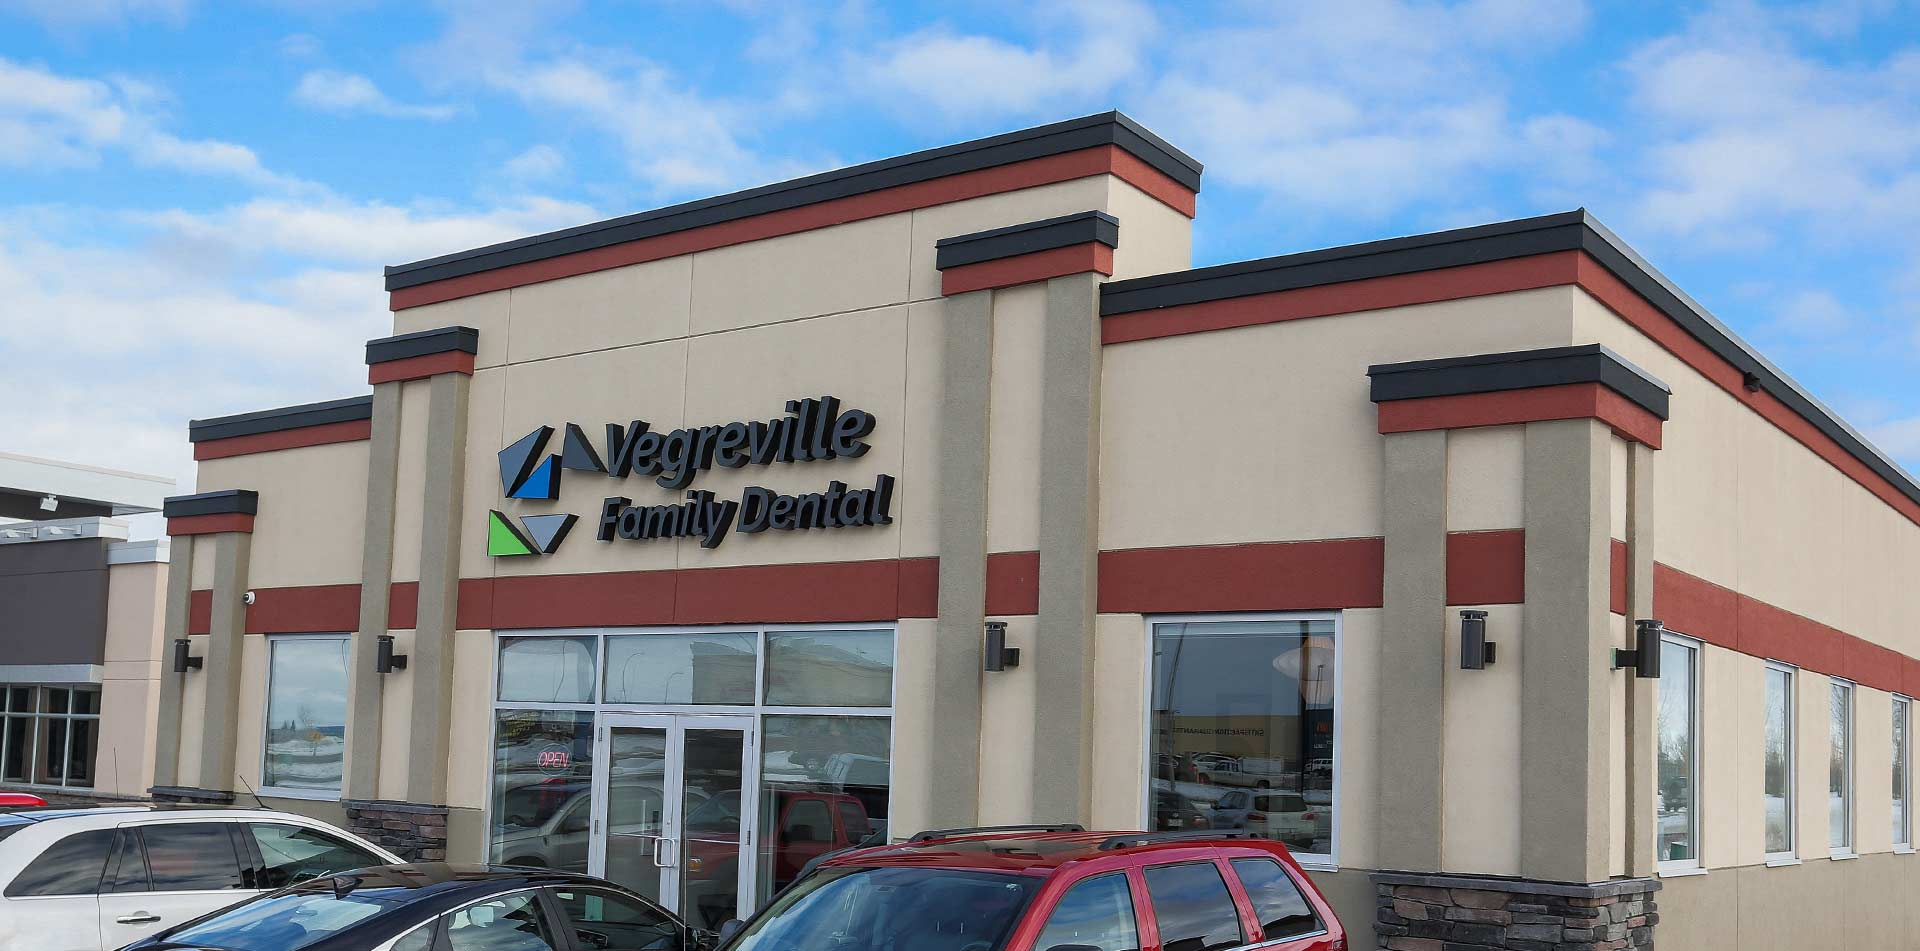 vegreville-family-dental-location-banner